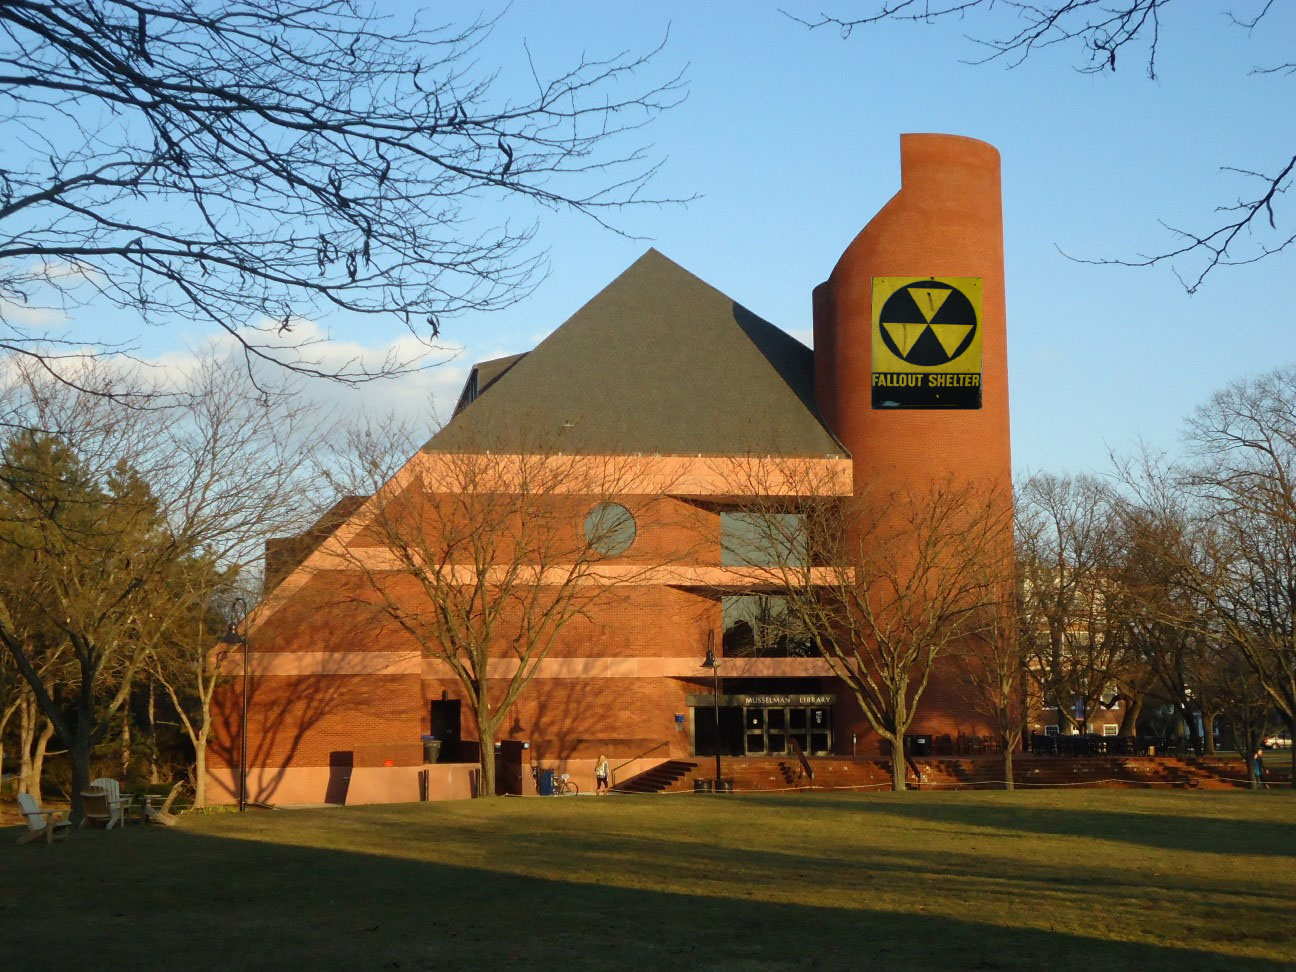 Musselman Library now brandishes a nuclear fallout sign. (Photo Courtesy of Wikimedia Commons and Flickr).